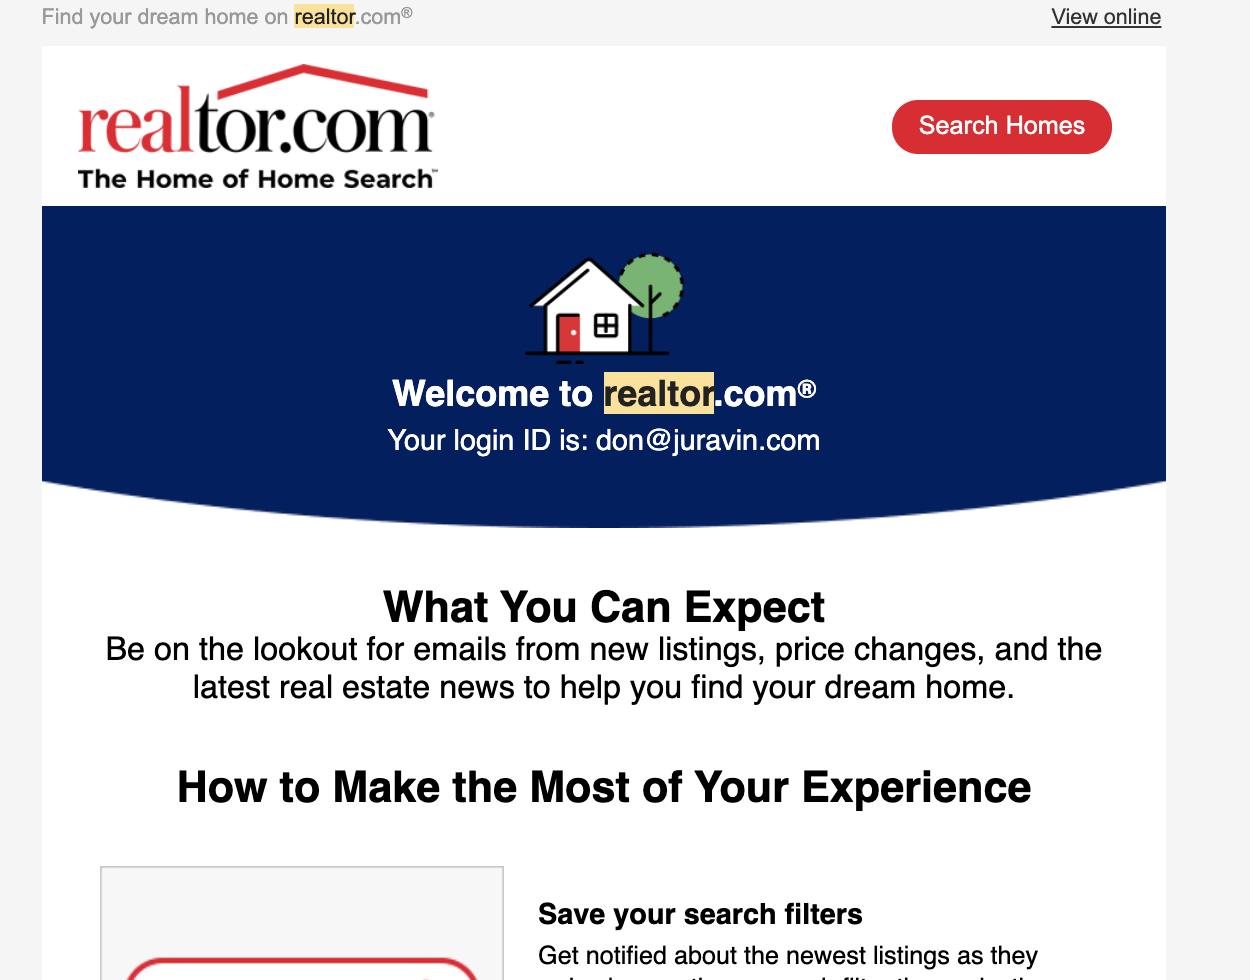 Did Realtor.com Facilitate The Alleged Illegal Activity With No Safeguard?